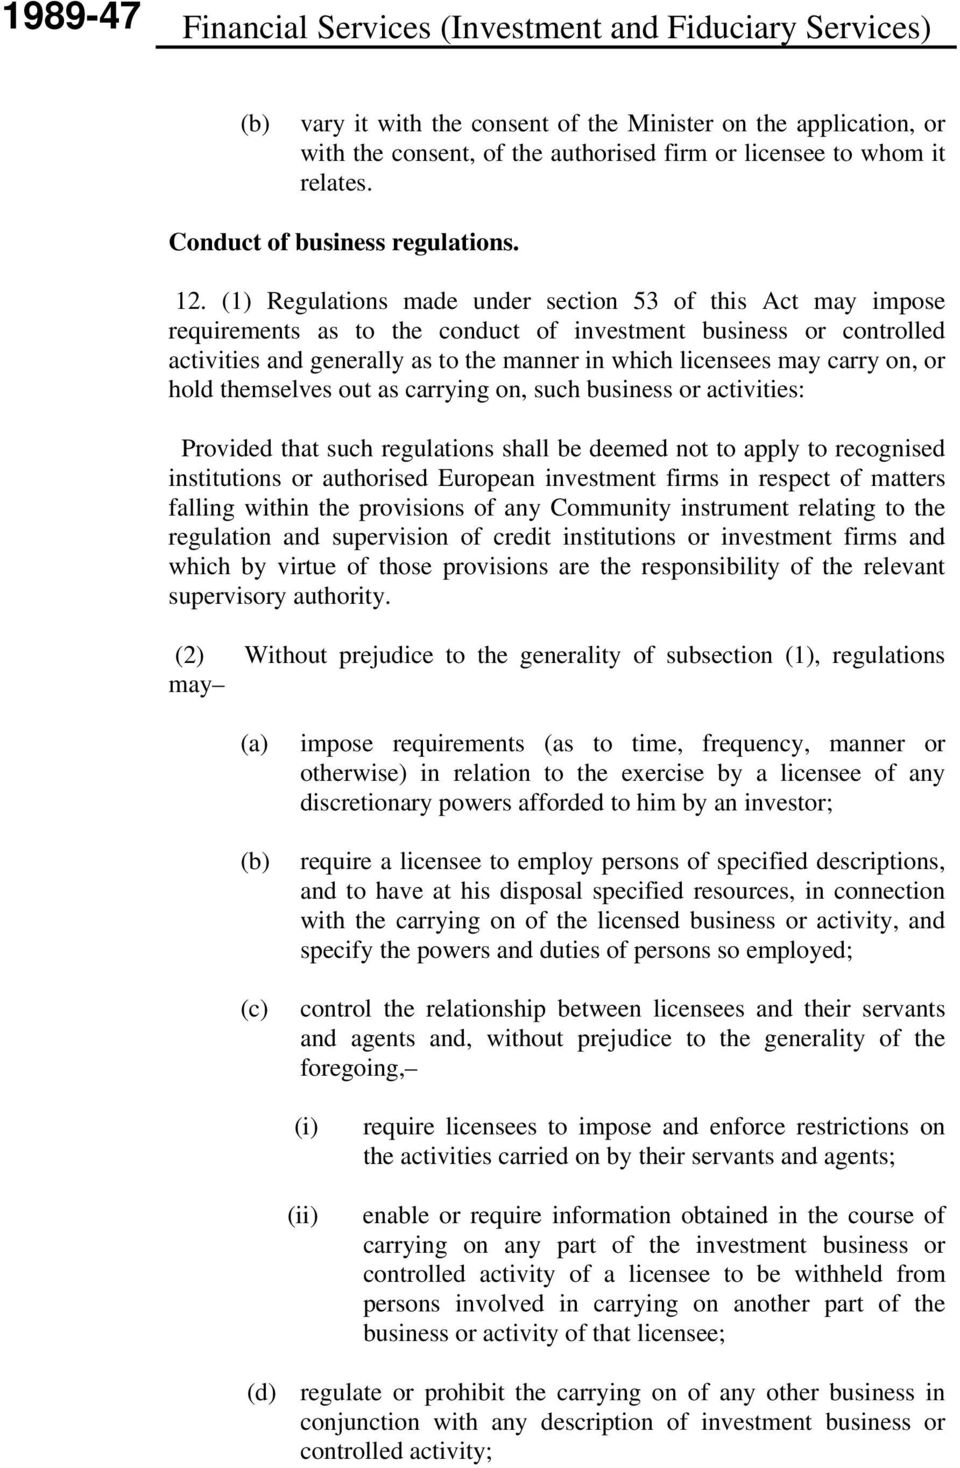 (1) Regulations made under section 53 of this Act may impose requirements as to the conduct of investment business or controlled activities and generally as to the manner in which licensees may carry